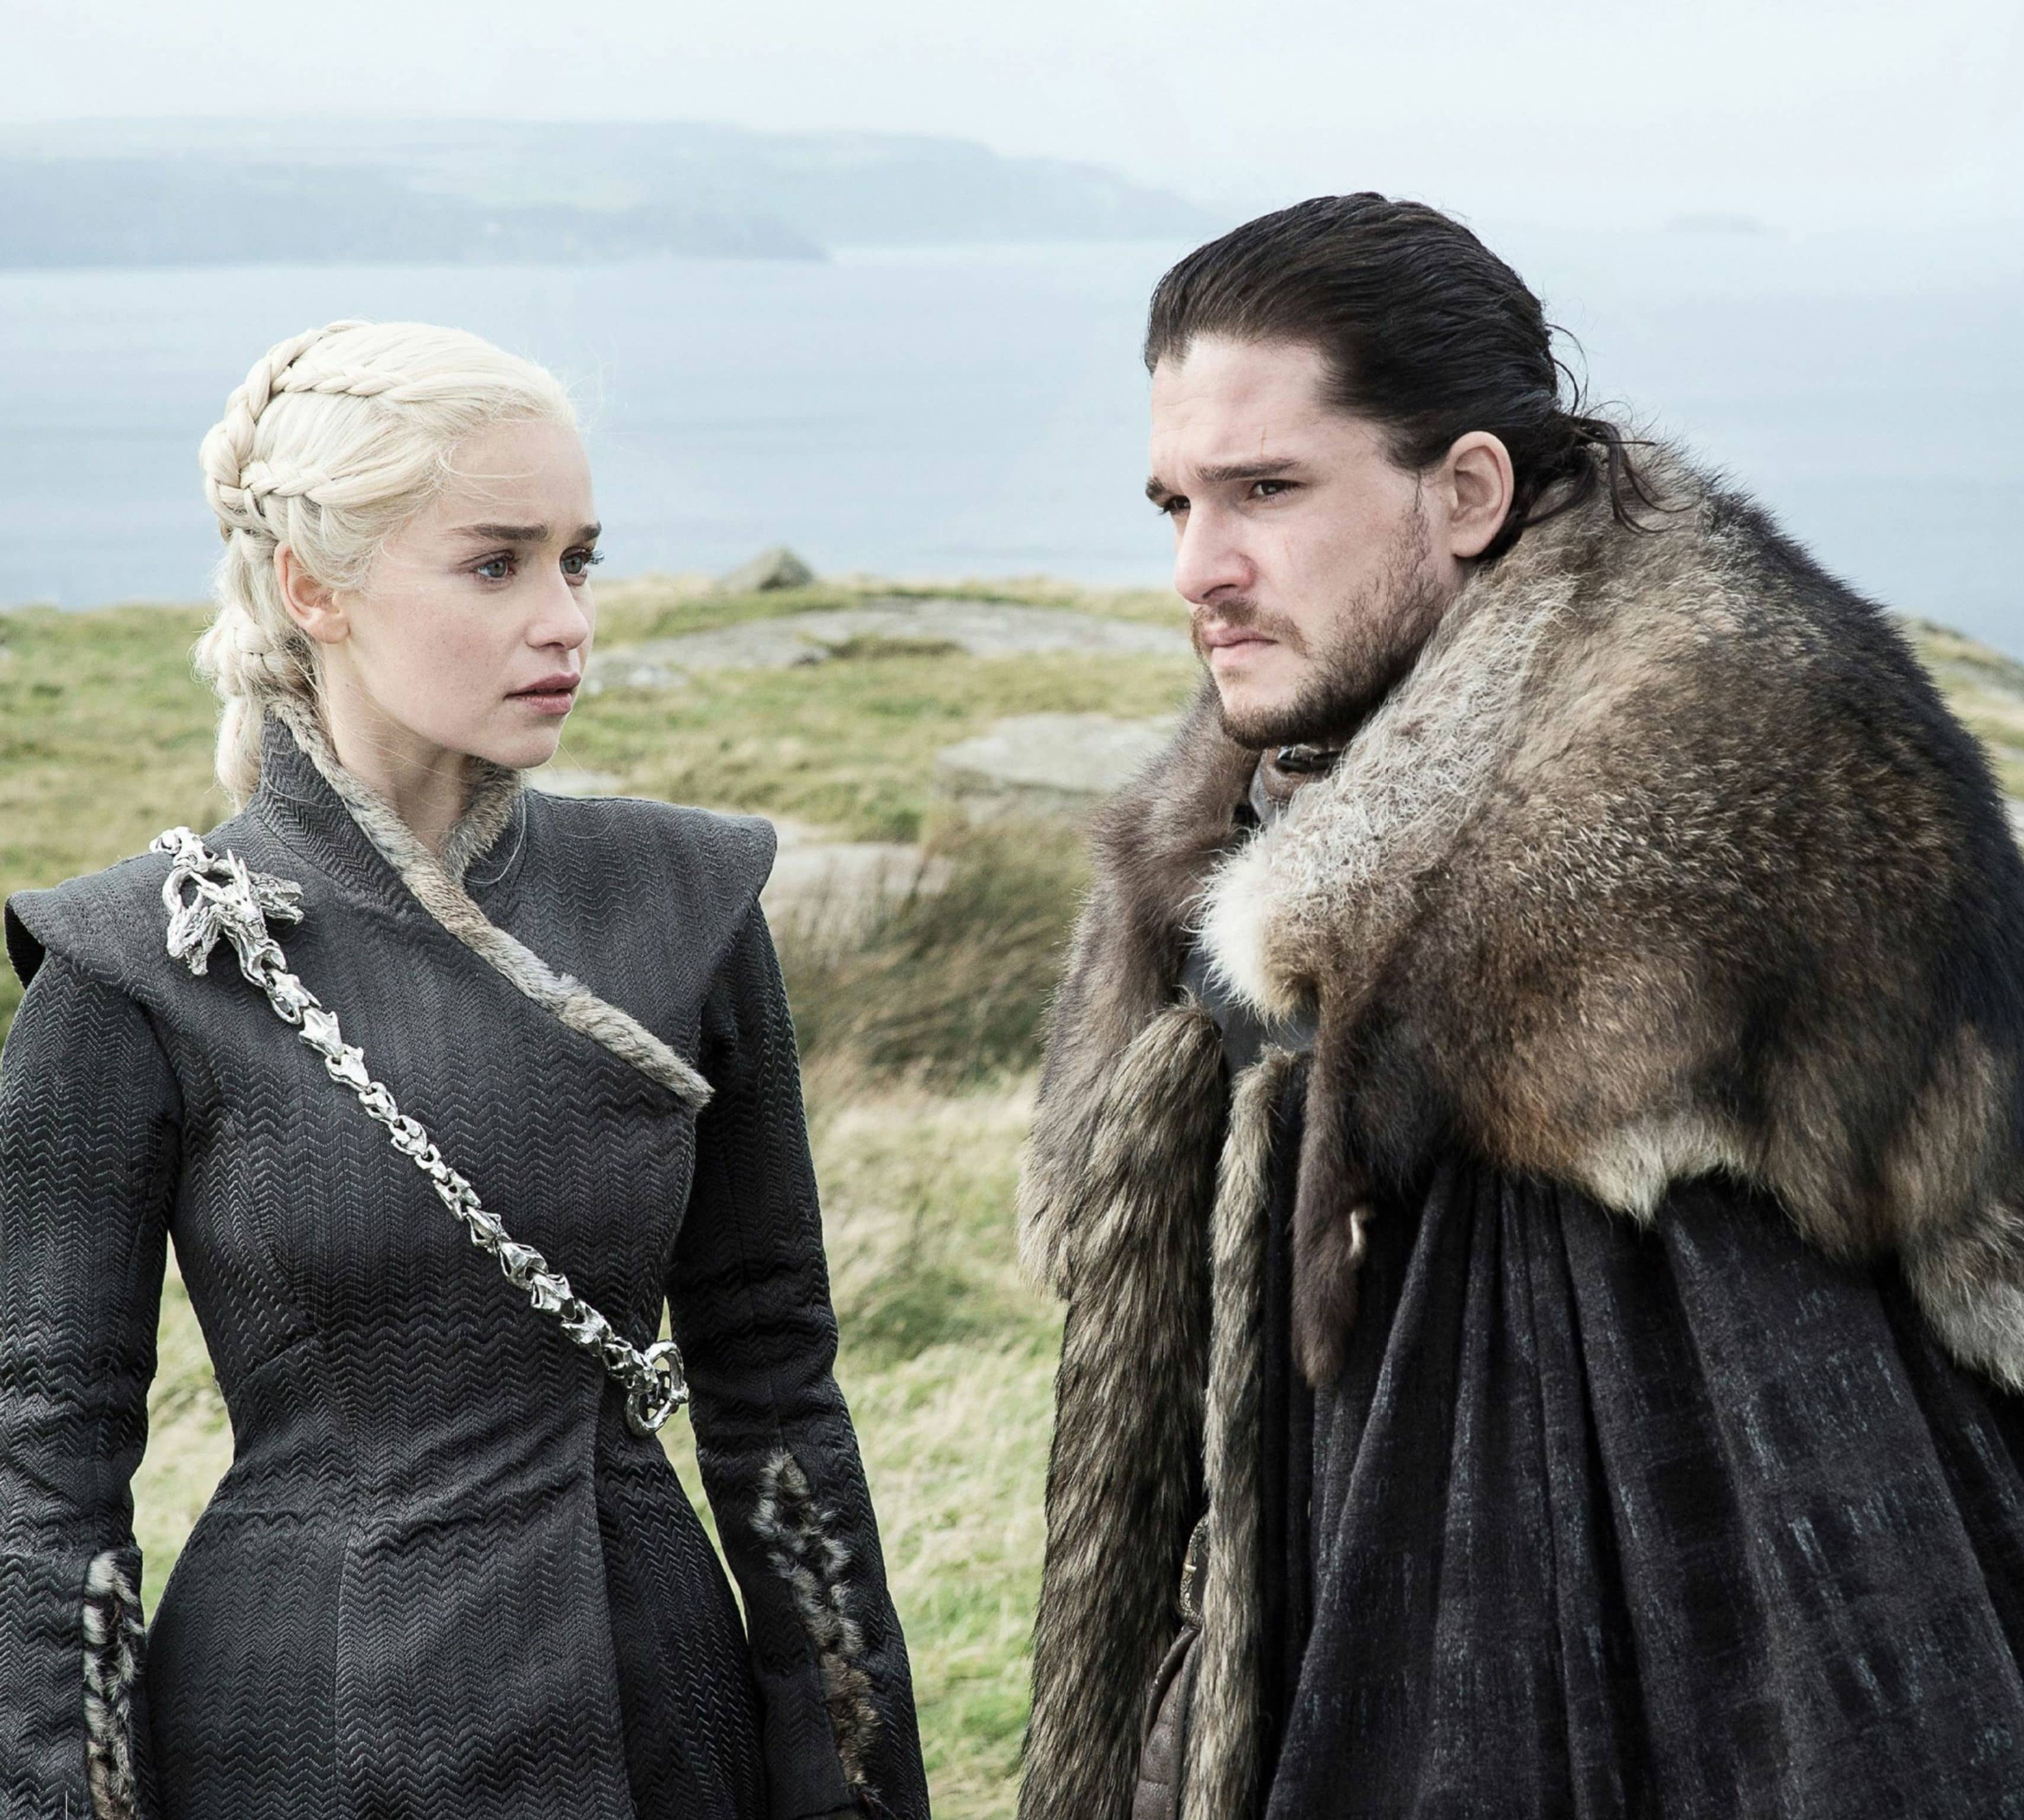 'Game Of Thrones' Final Season To Debut On April 14